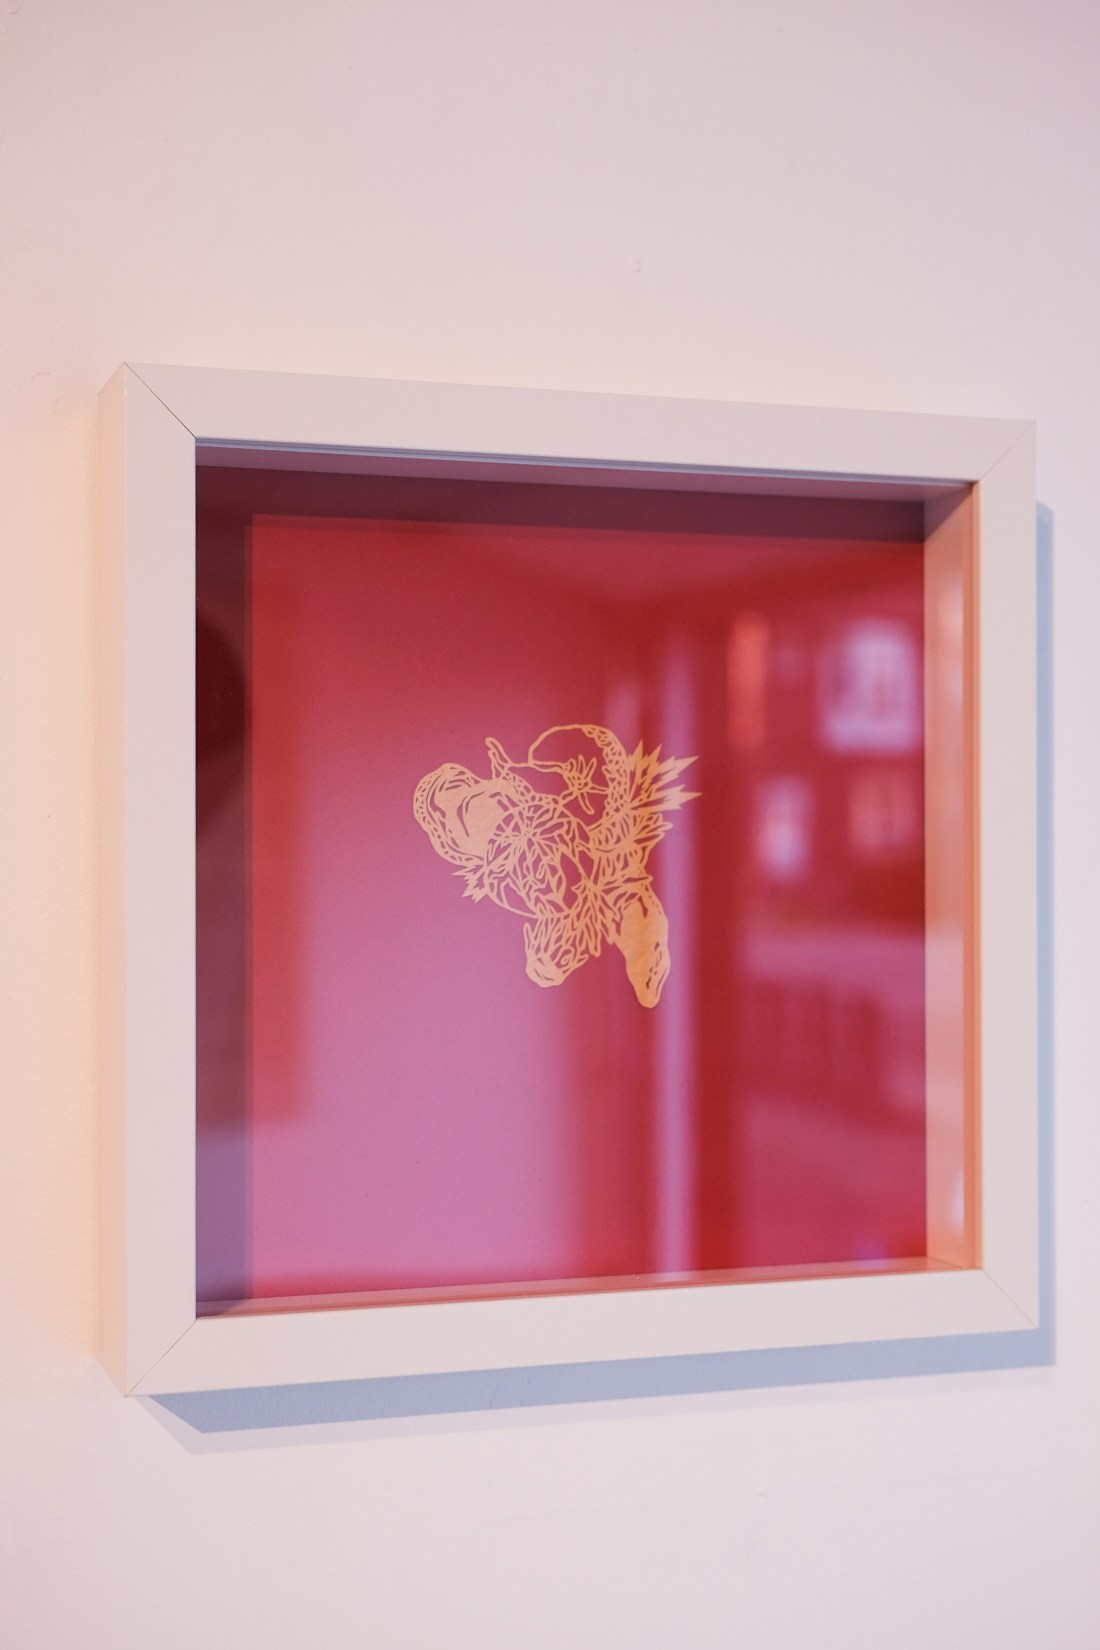 A photo of a small gold papercut of a peeled orange sits in the centre of a red background within a square white frame. The frame is hung on a blank wall.